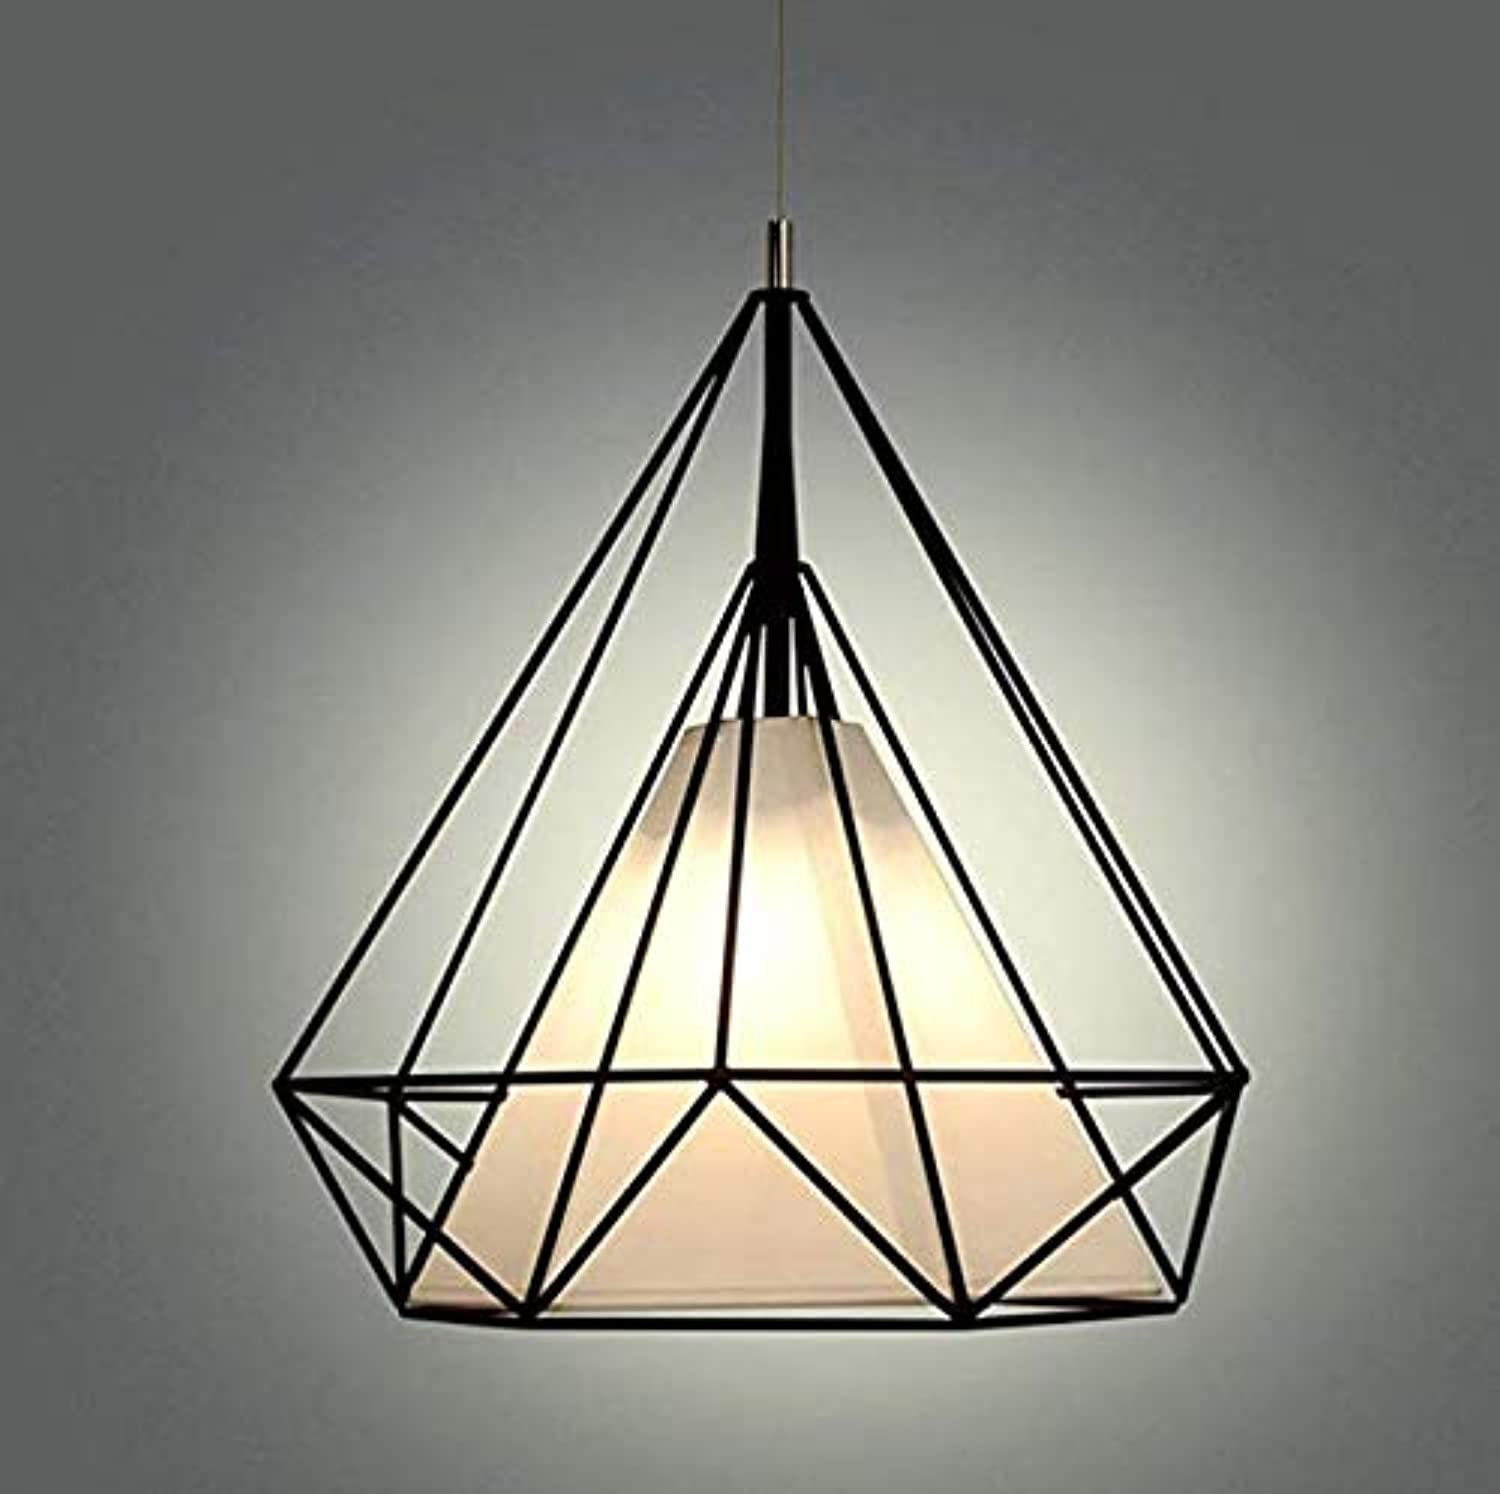 E27 Industrial Diamond Style Chandelier, Creative Retro Bird Cage Pendant Lamp Fixture, Metal Pendant Lamp mit Painted Finish for Kitchen